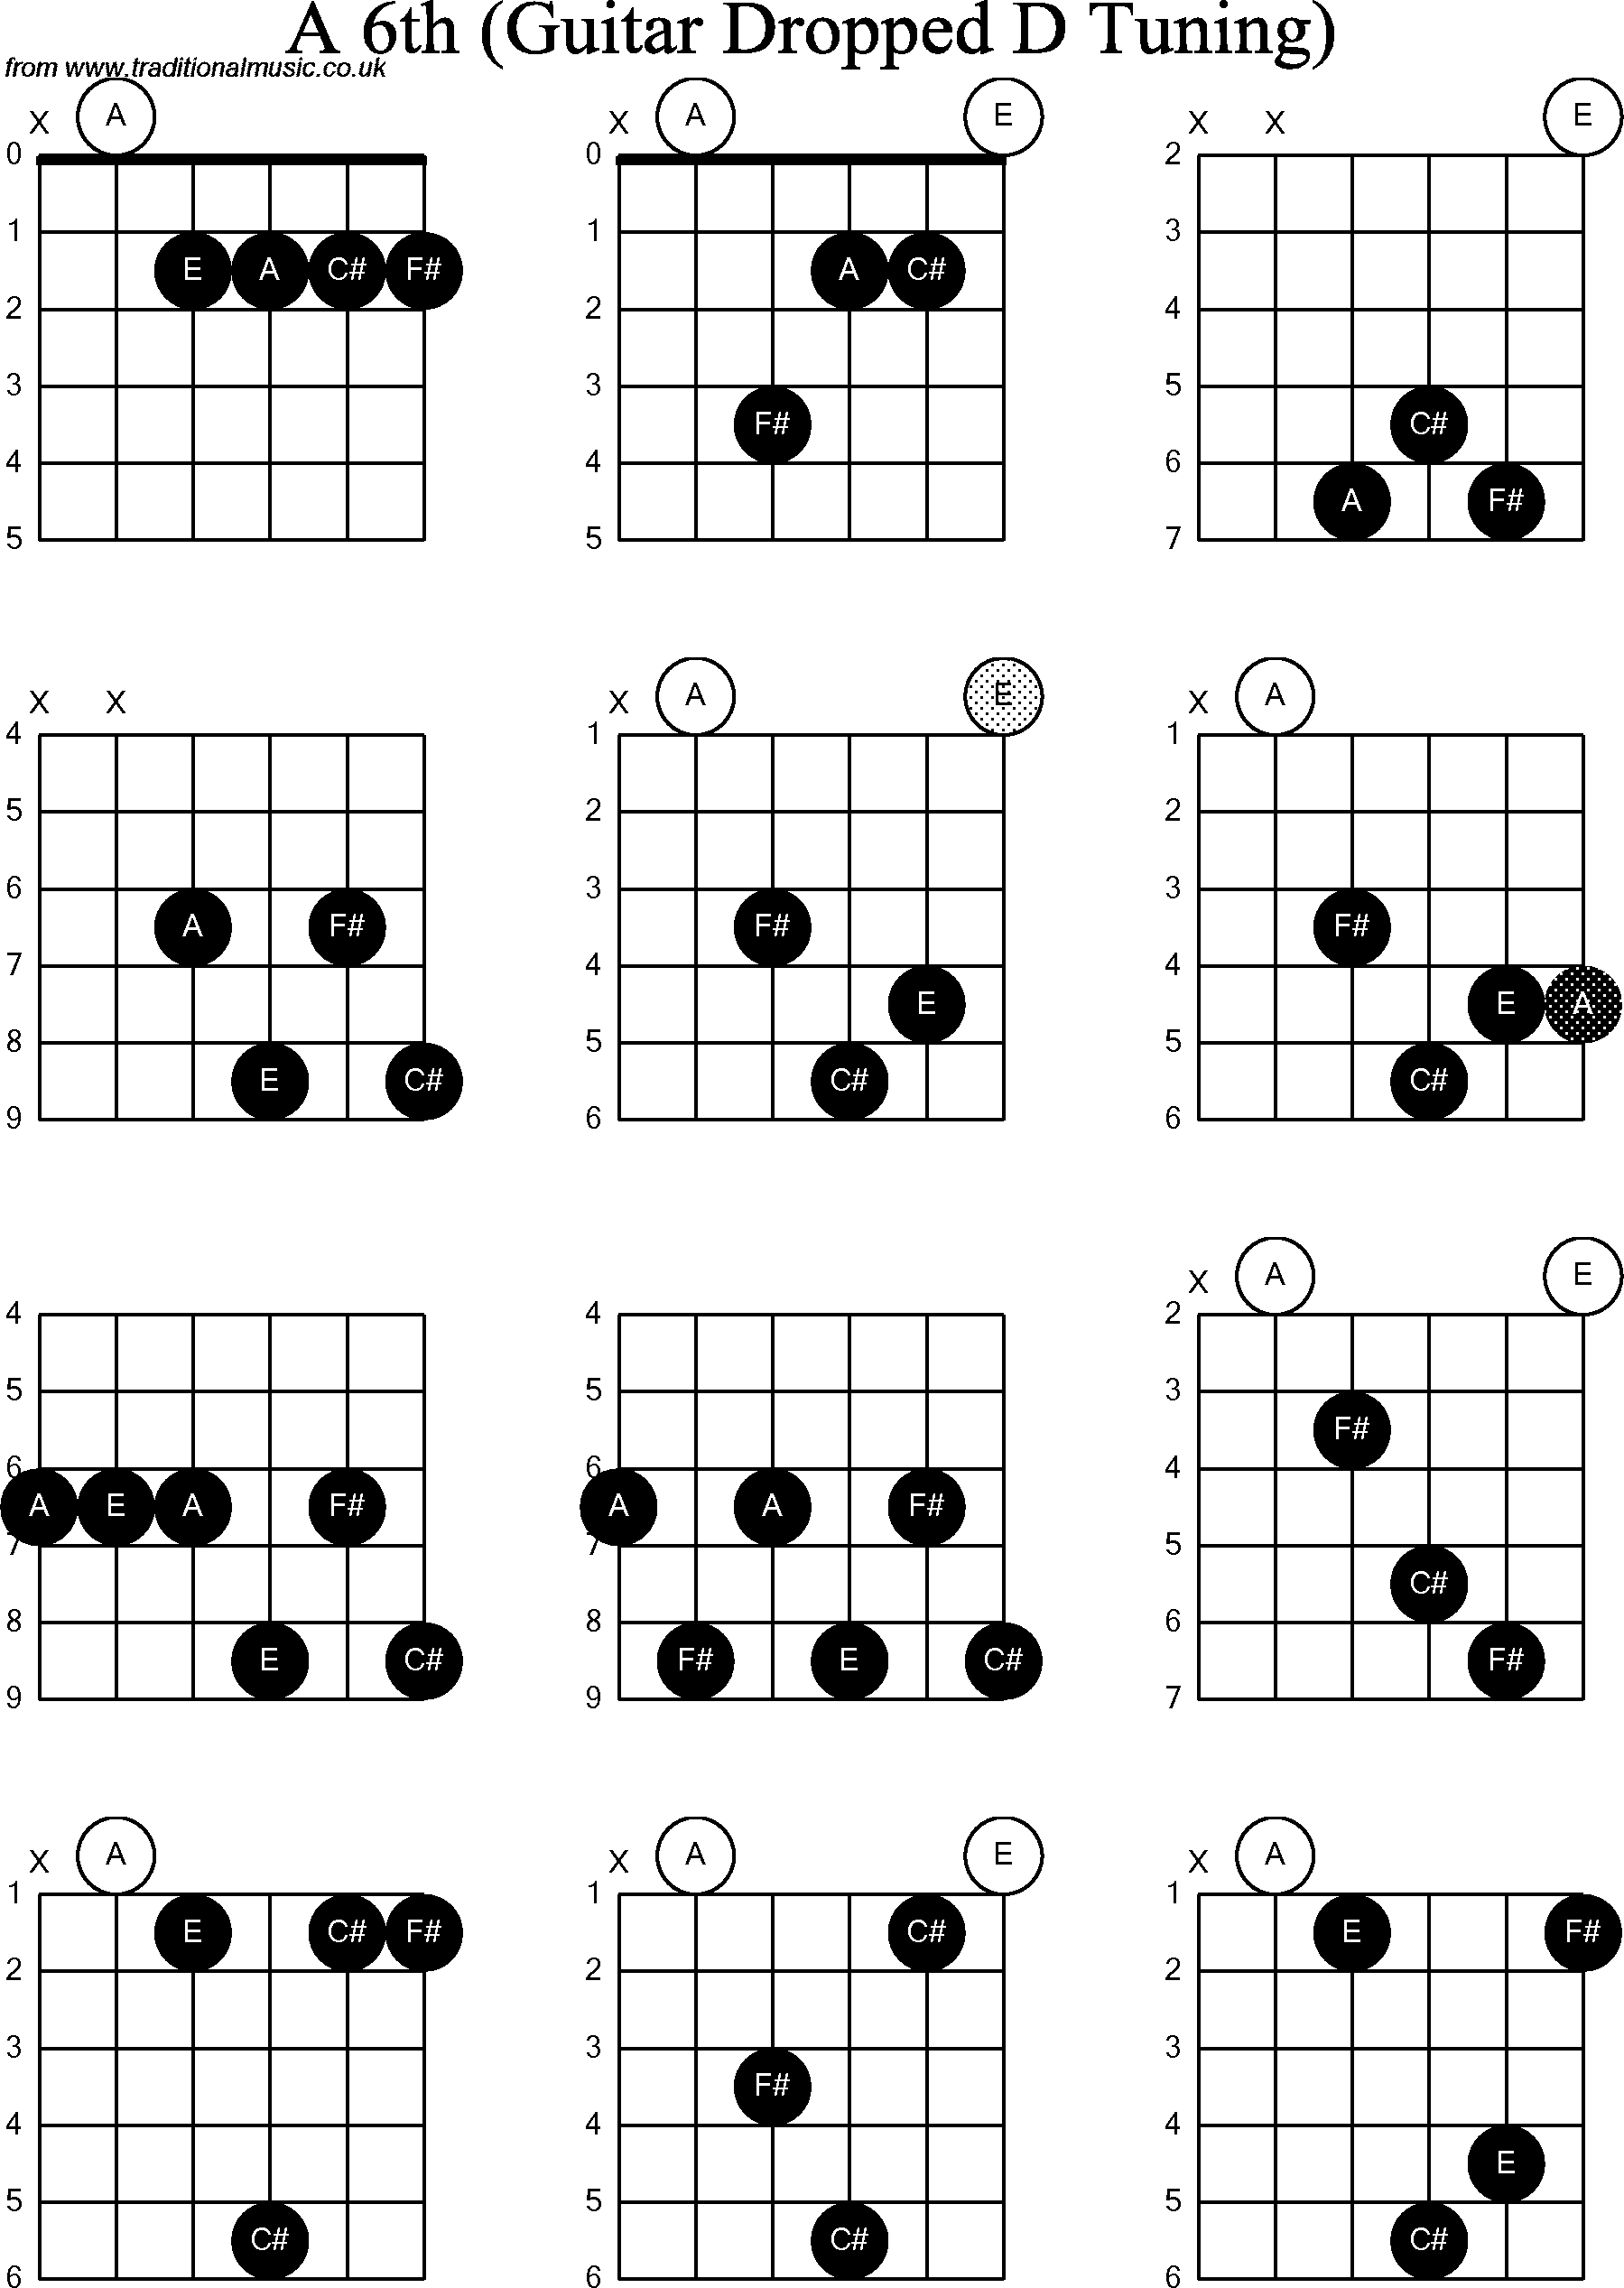 Chord diagrams for dropped d guitardadgbe a6th chord diagrams for dropped d guitardadgbe a6th hexwebz Choice Image